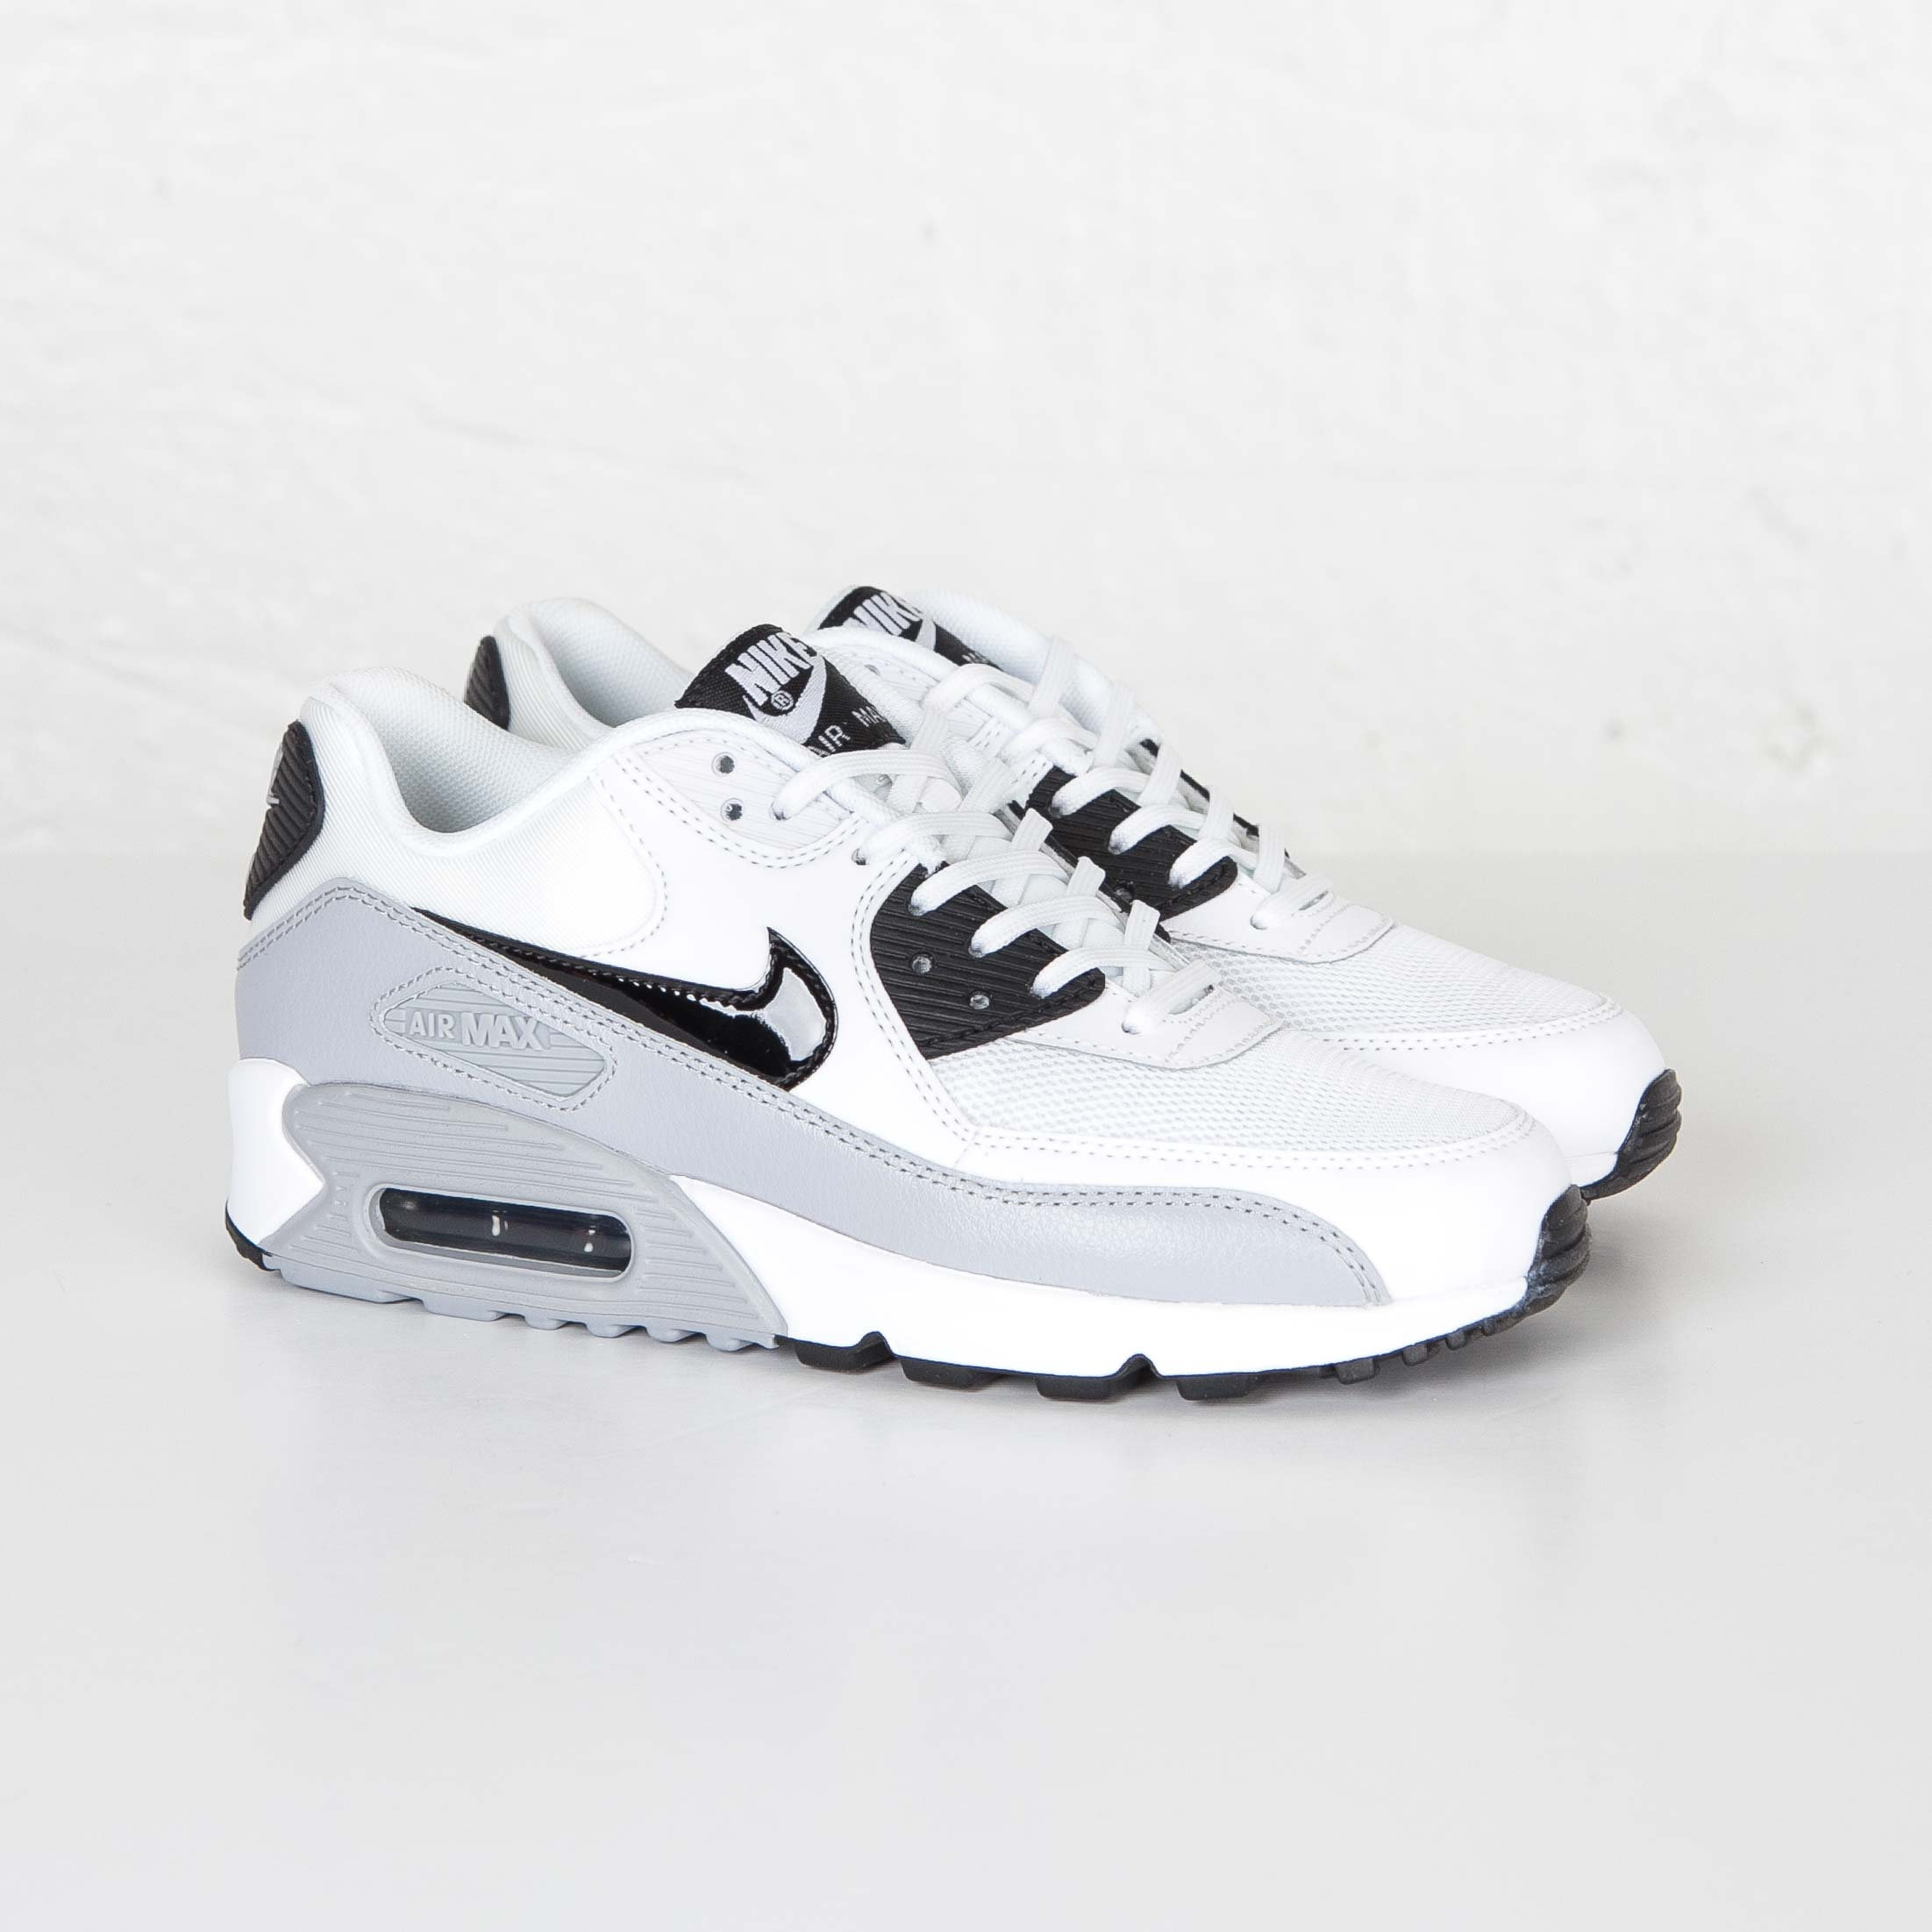 Nike WMNS Air Max 90 Essential Shoes 616730 111